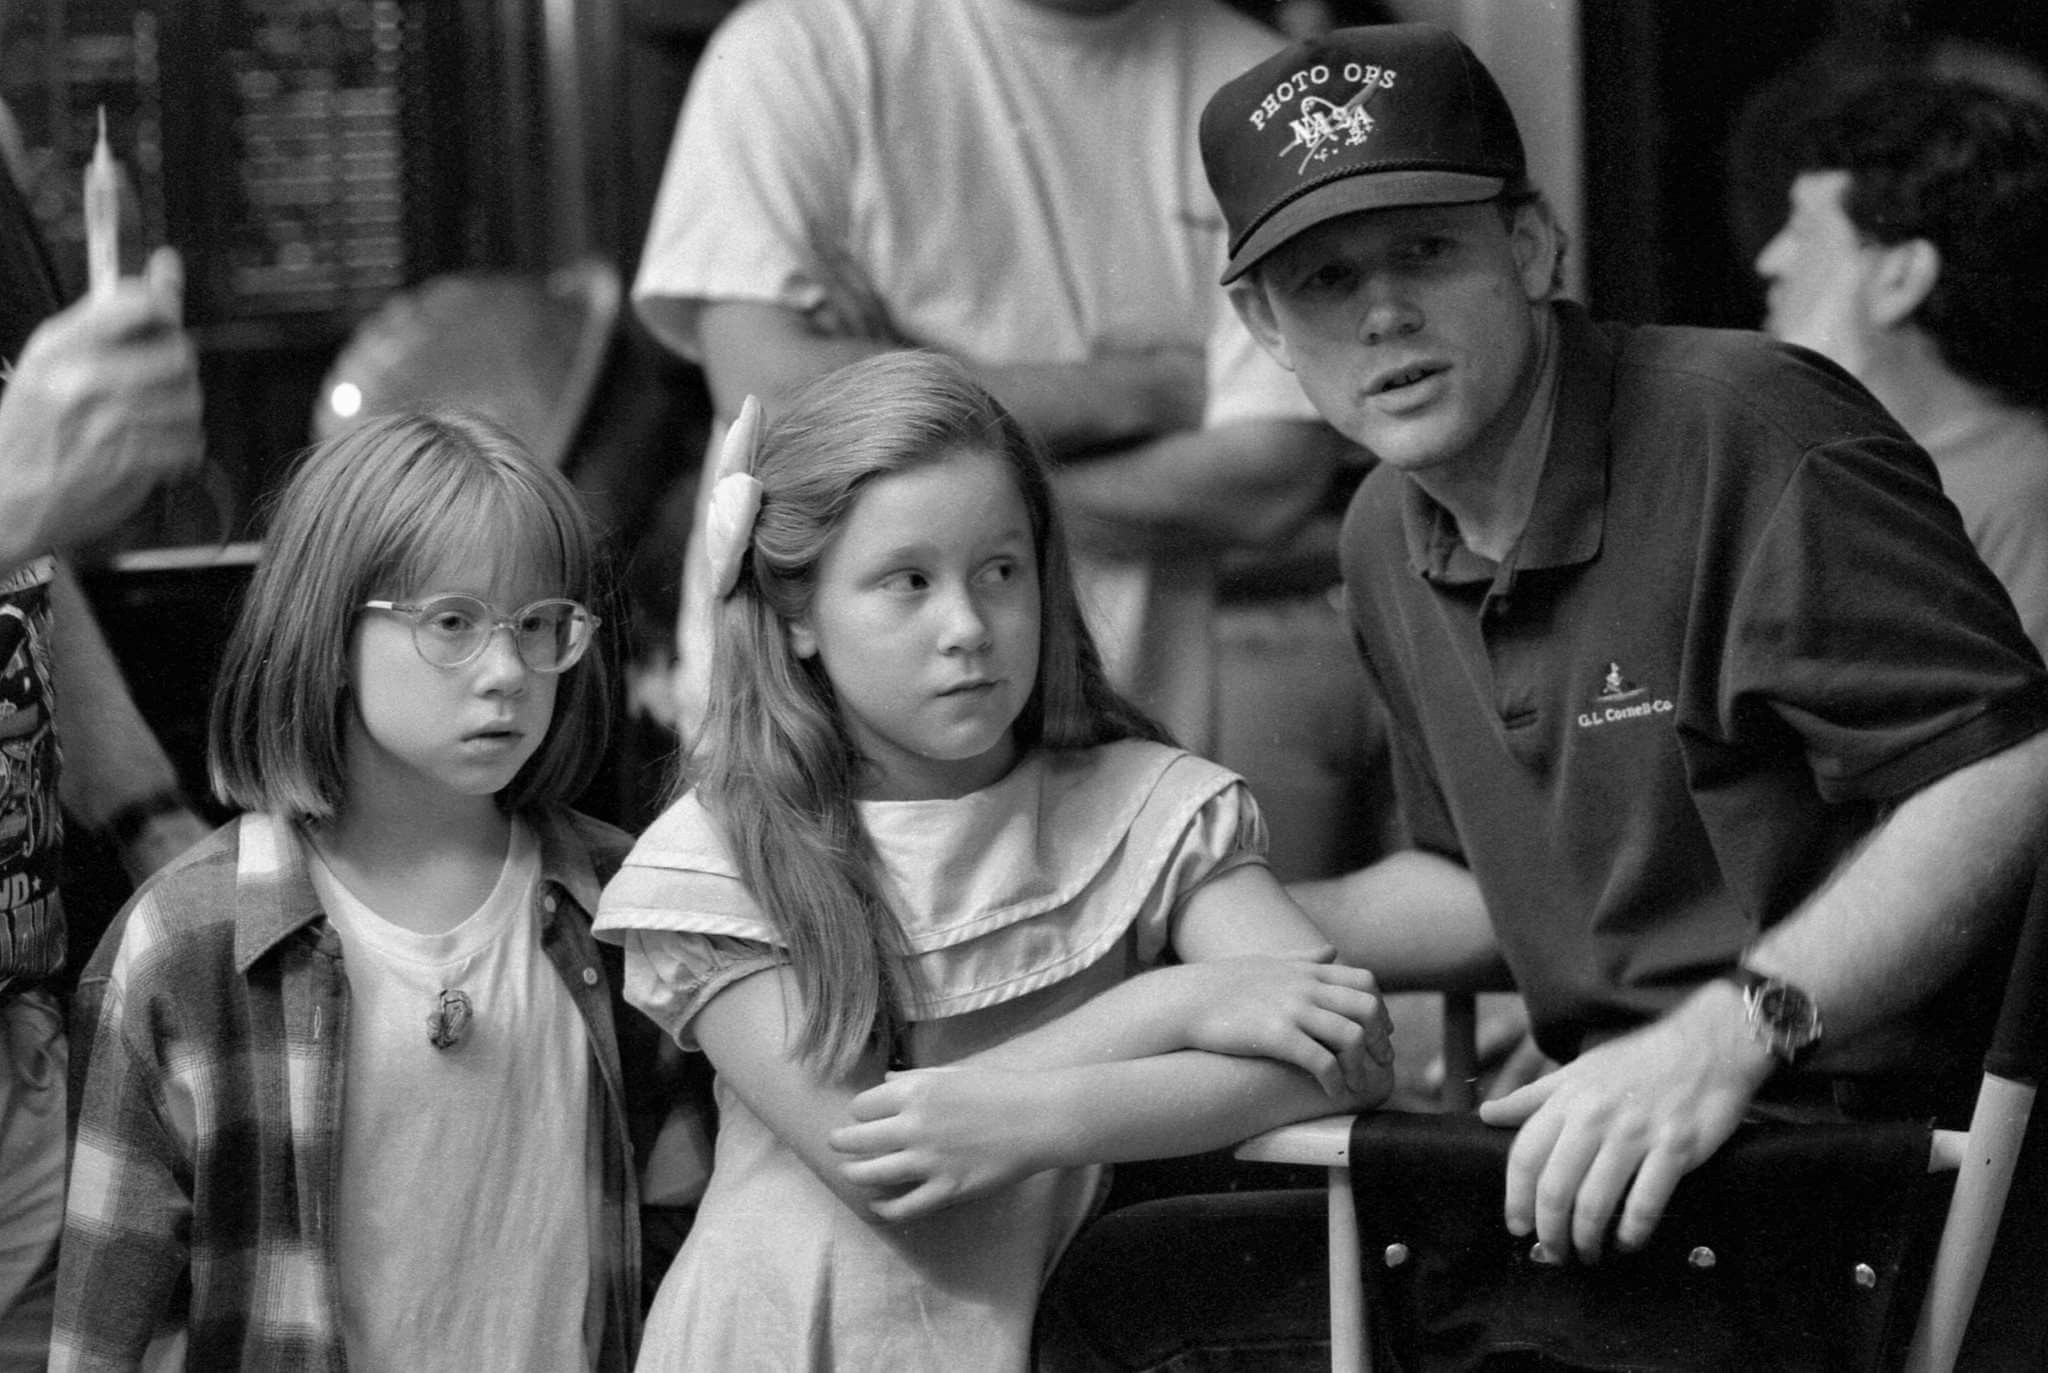 Jocelyn Howard: 5 Things To Know About Ron Howard's Daughter